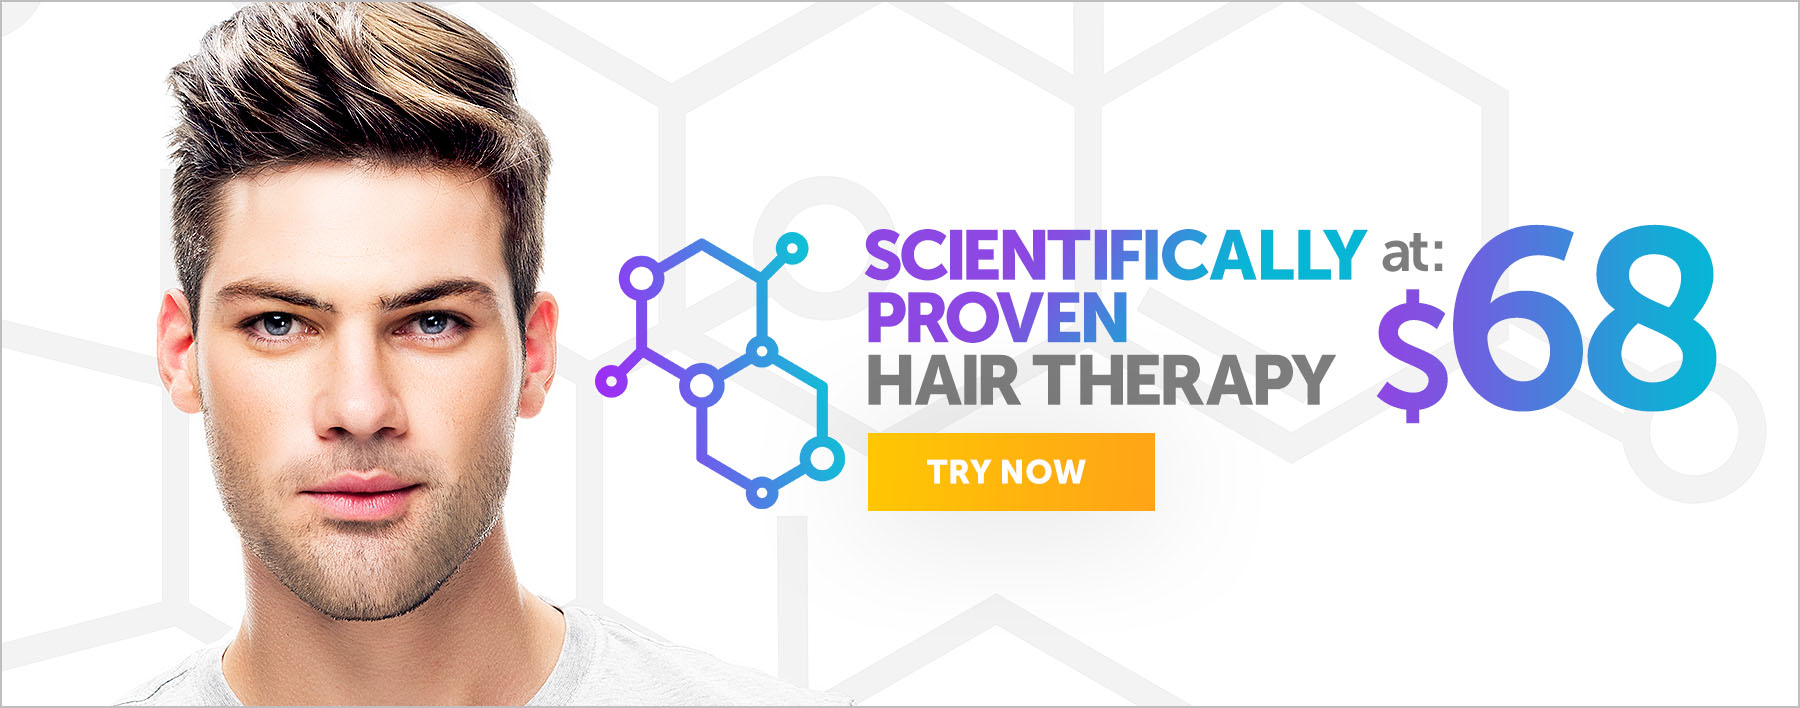 Scientifically Proven Hair Therapy